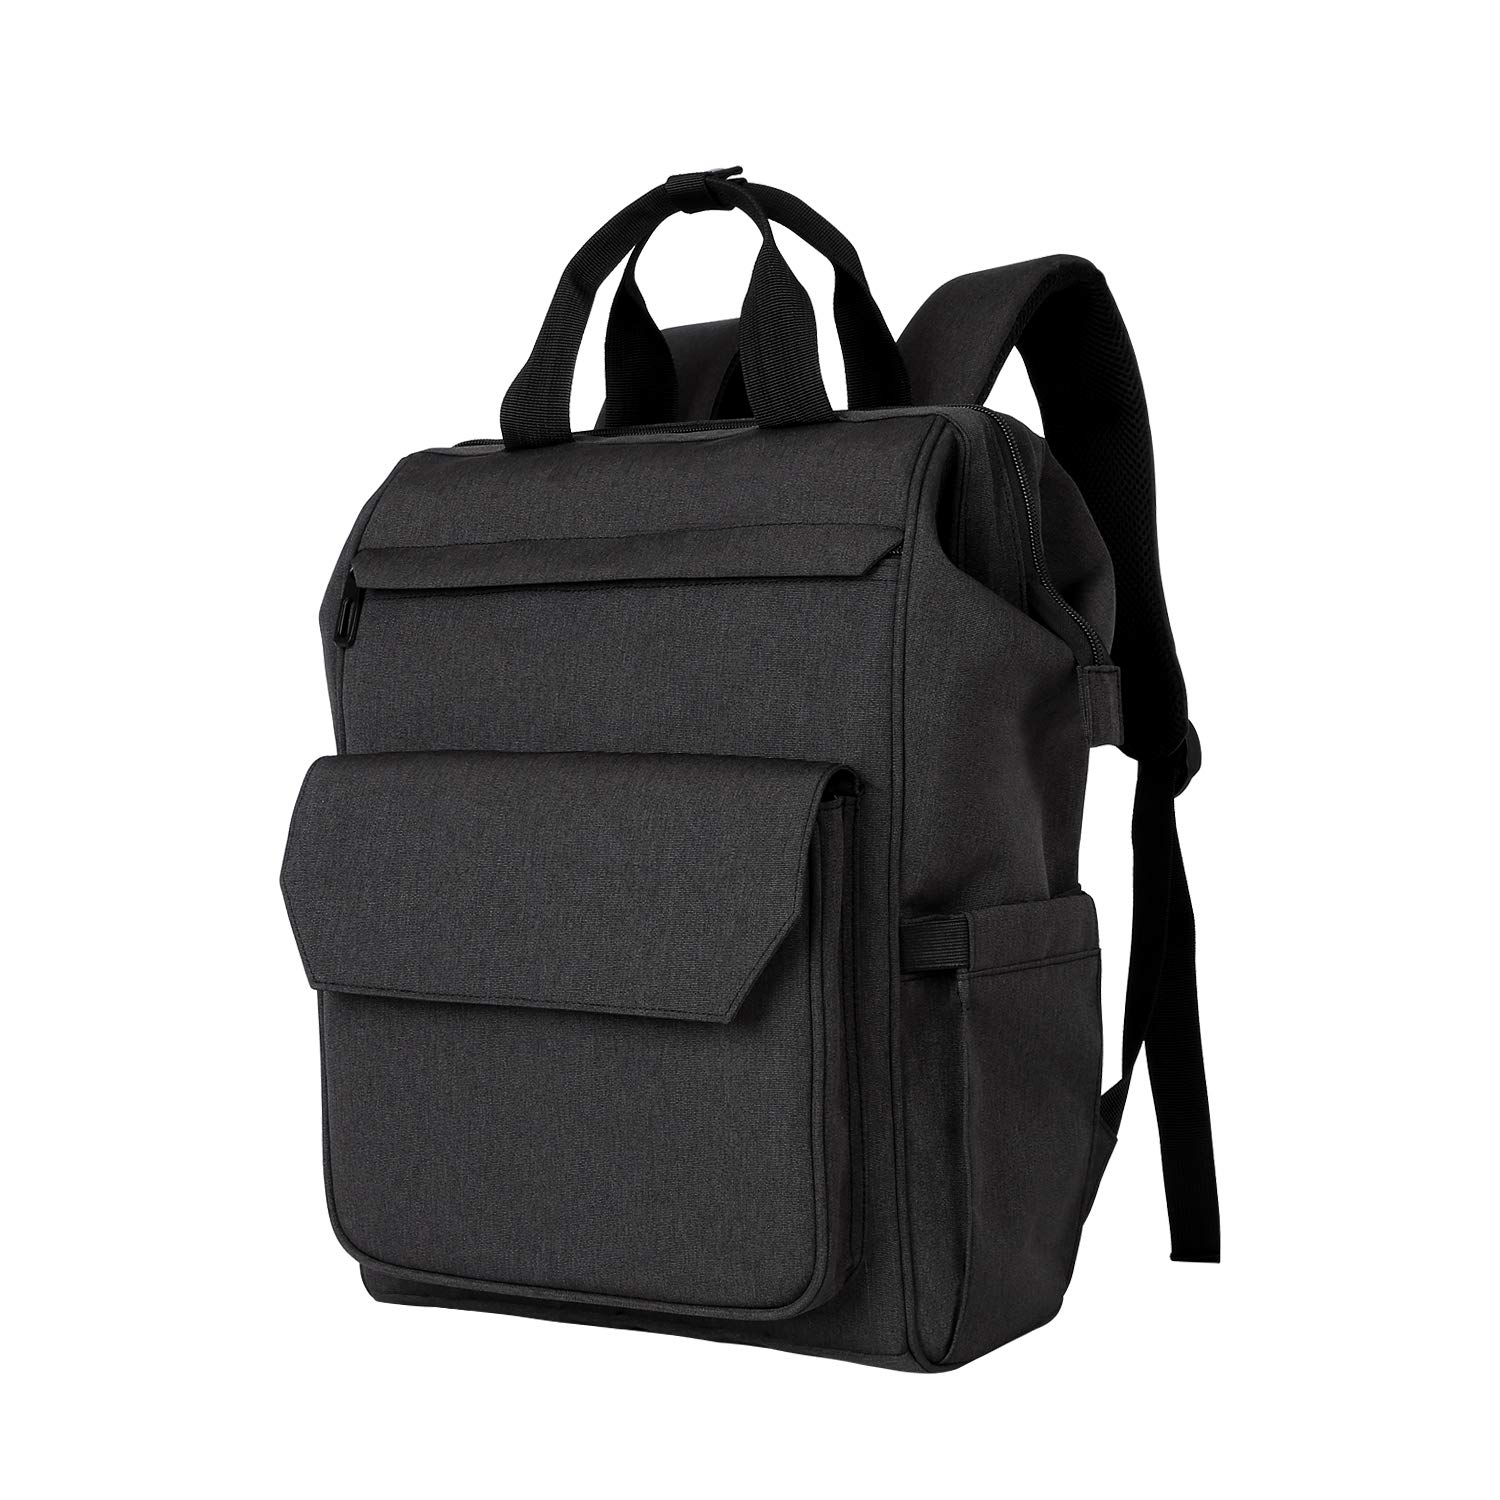 "Zpoint 7652 Large Business Travel Backpack, Durable Functional Water Resistant, School College Commuting Bag with Headphones Port Luggage Strap 15.6 "" Laptop, Black  Price: $29.90"